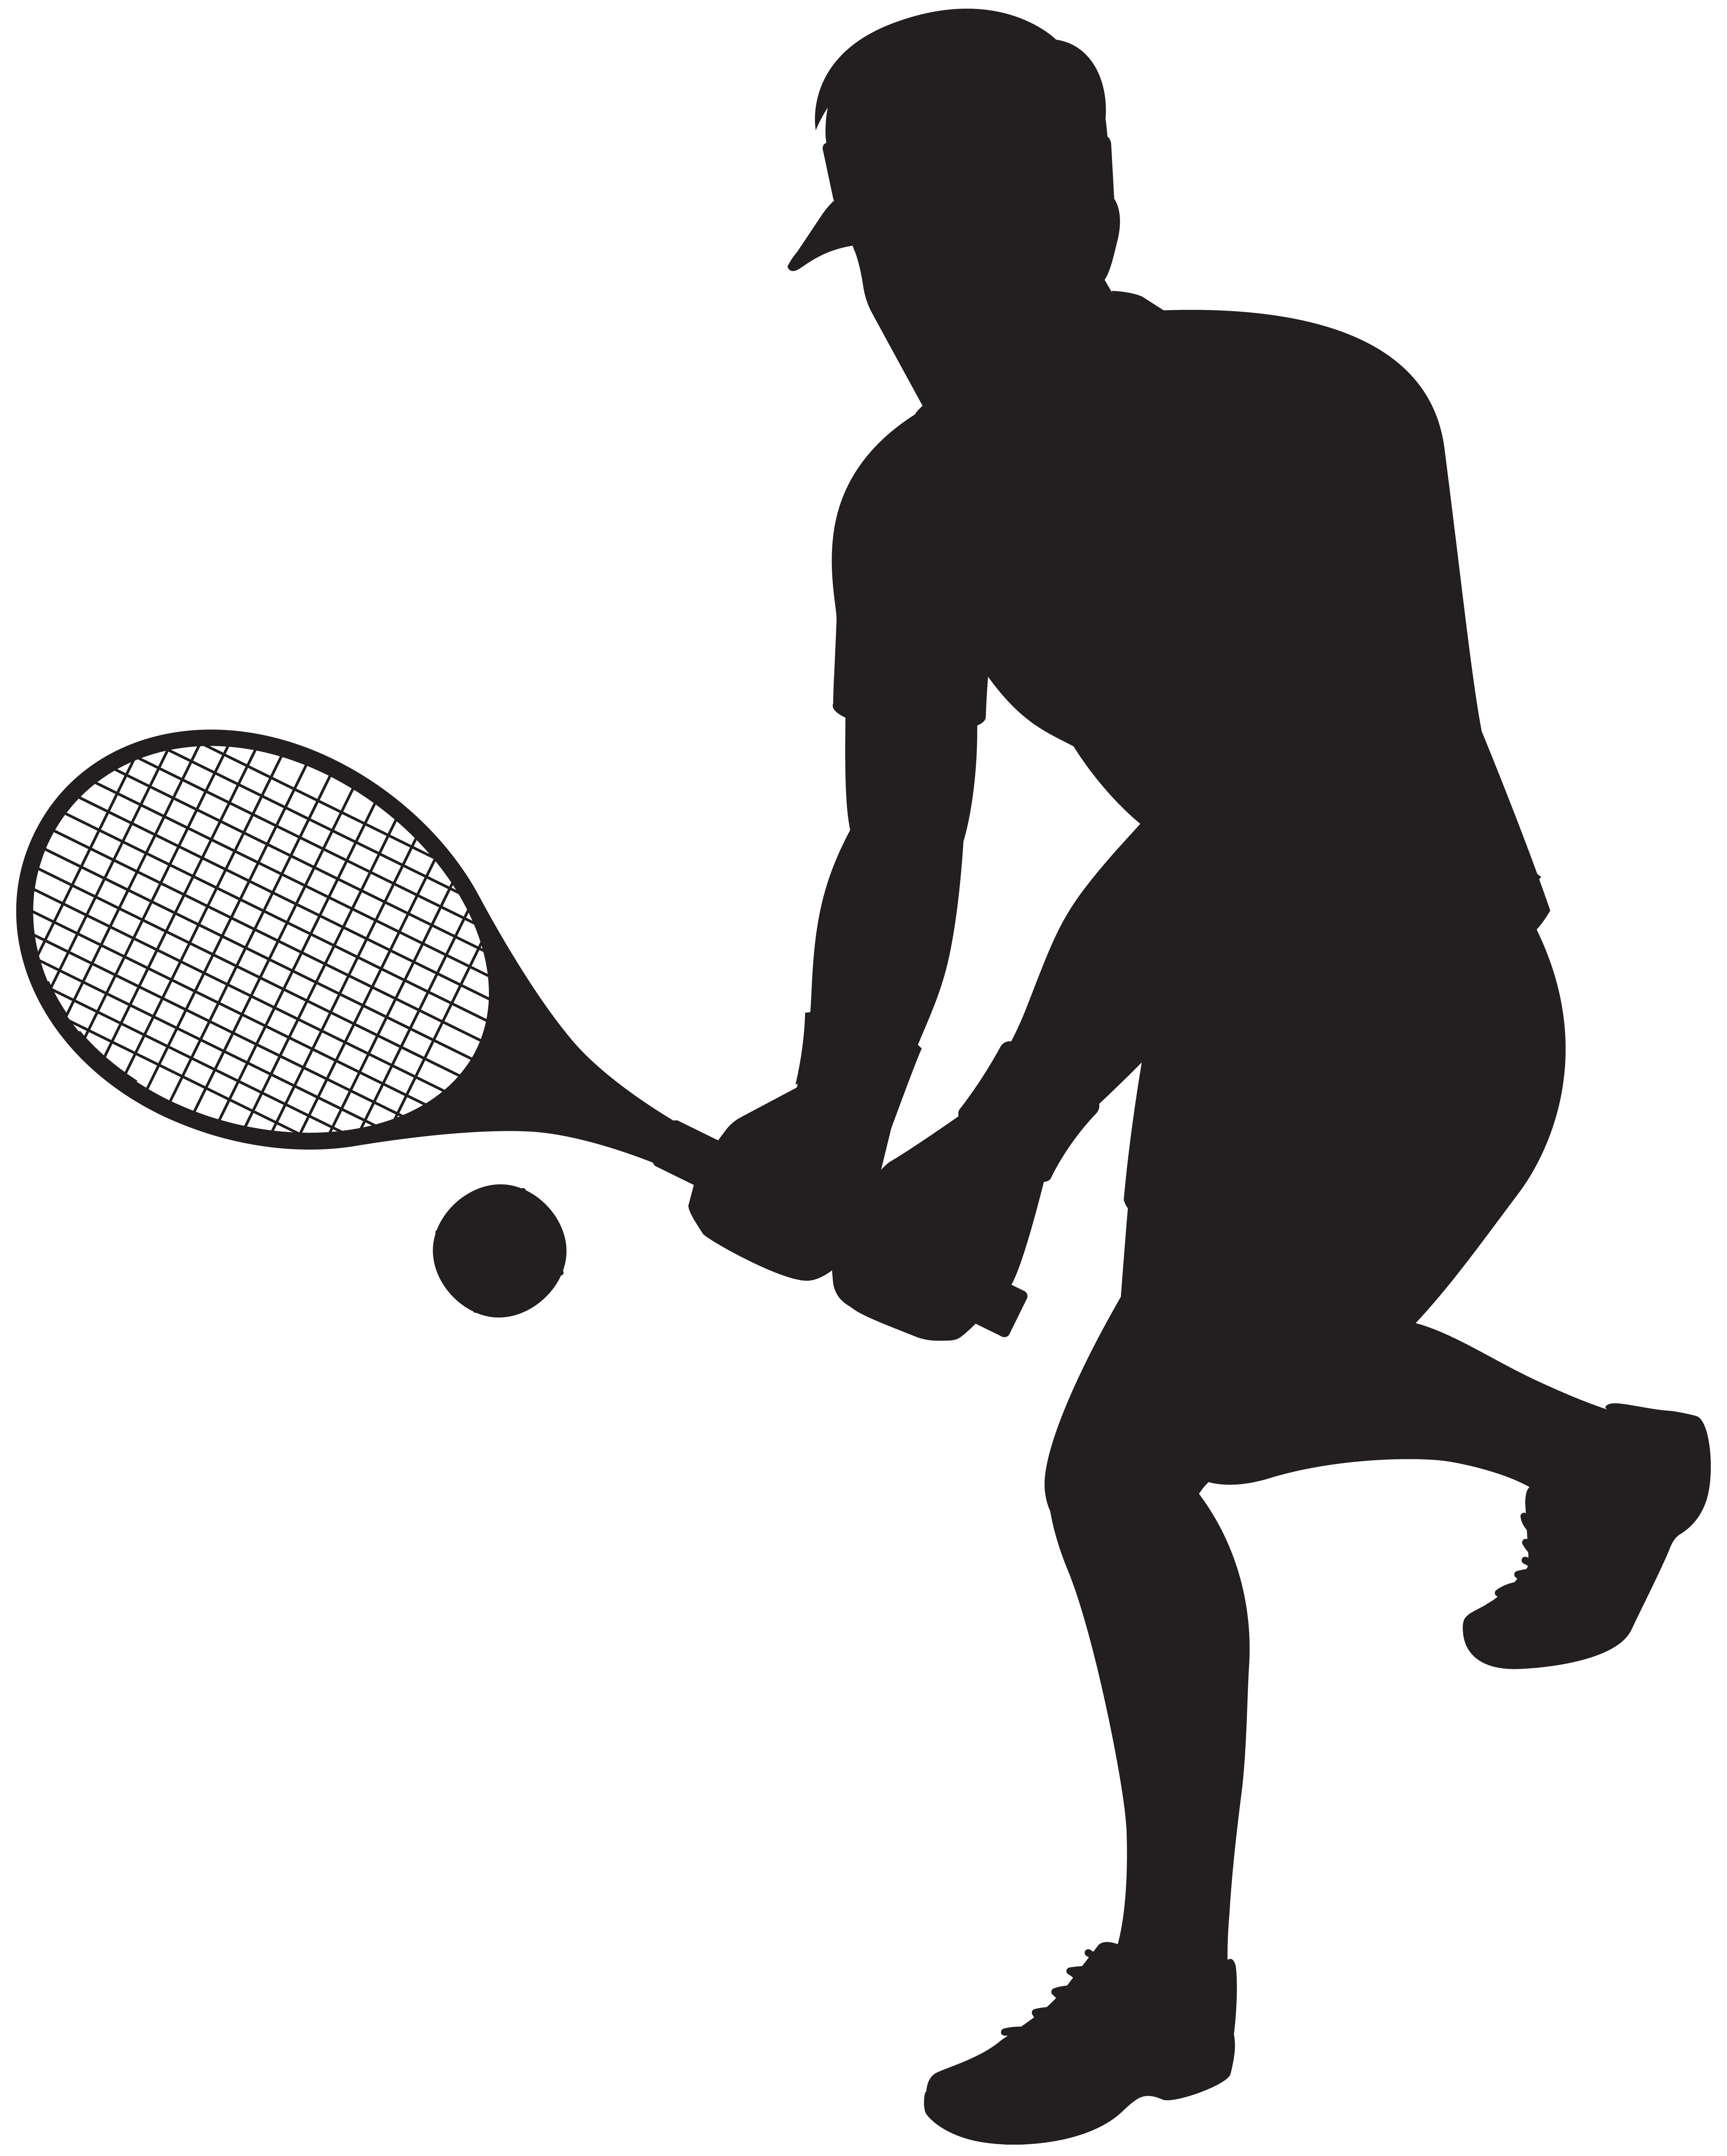 Tennis valentines clipart png transparent library Tennis Player Silhouette Clip Art Image | Gallery ... png transparent library